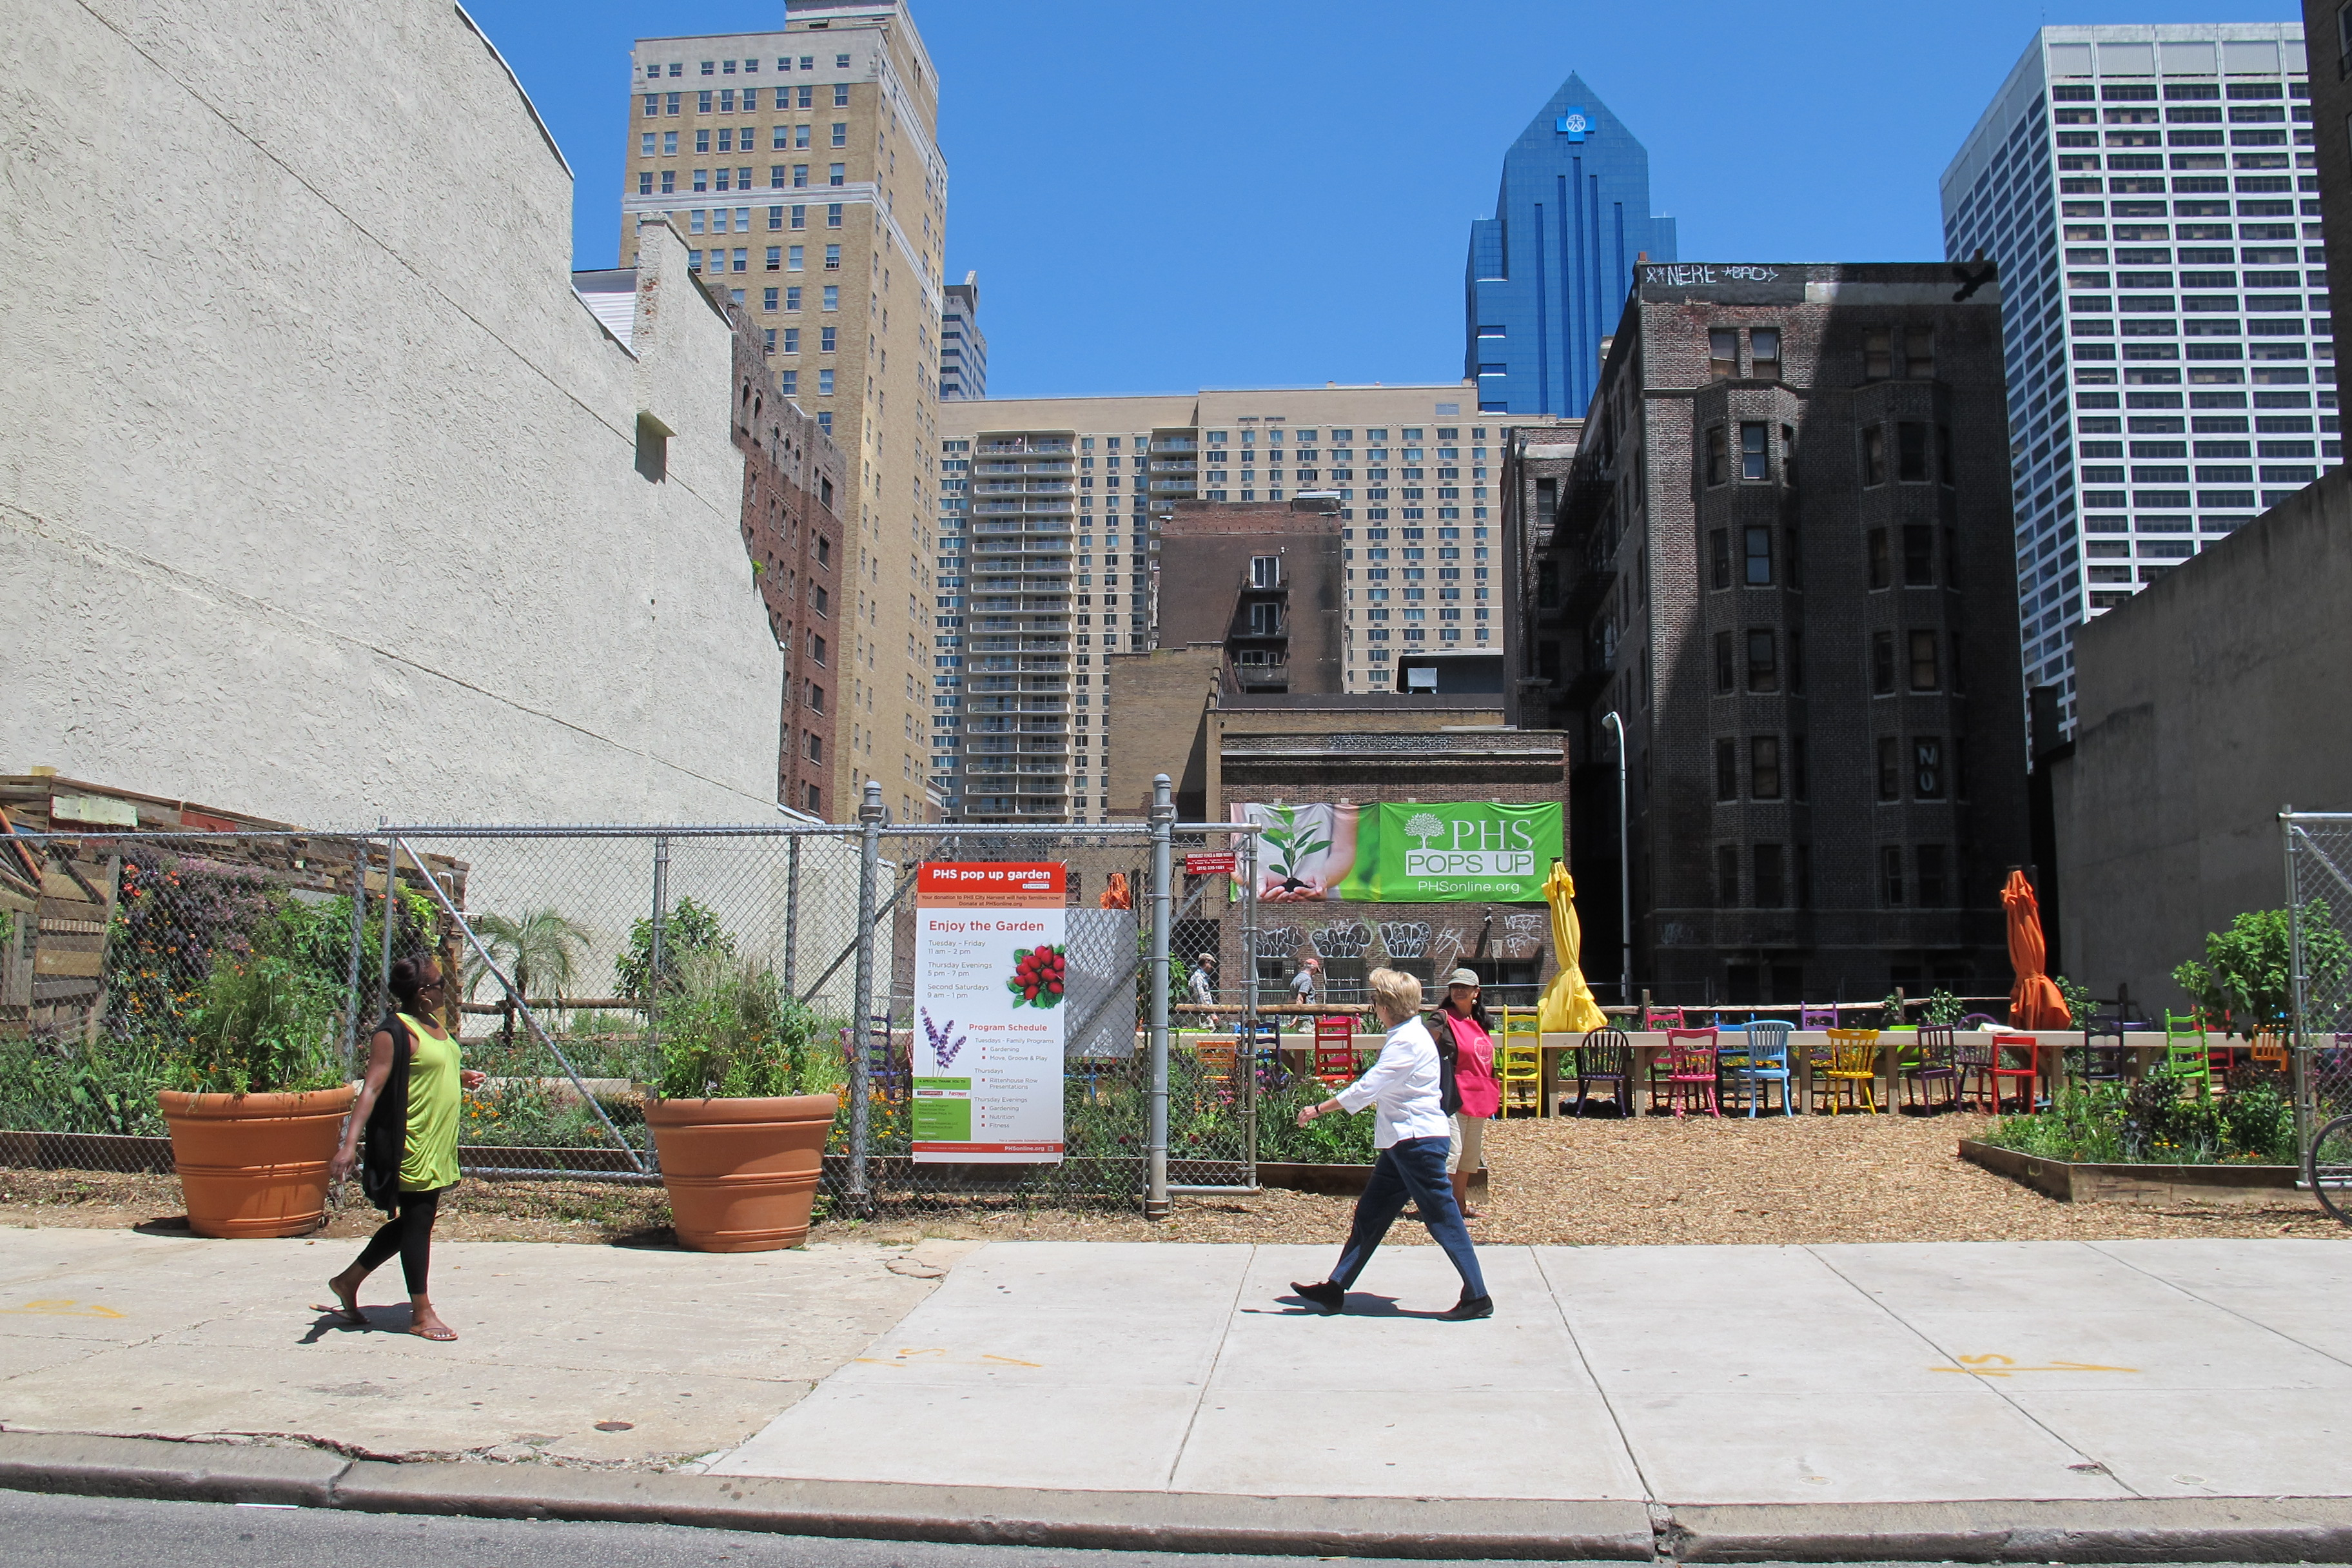 PHS Pops-Up Garden has taken over a vacant property on the 1900 block of Walnut Street.